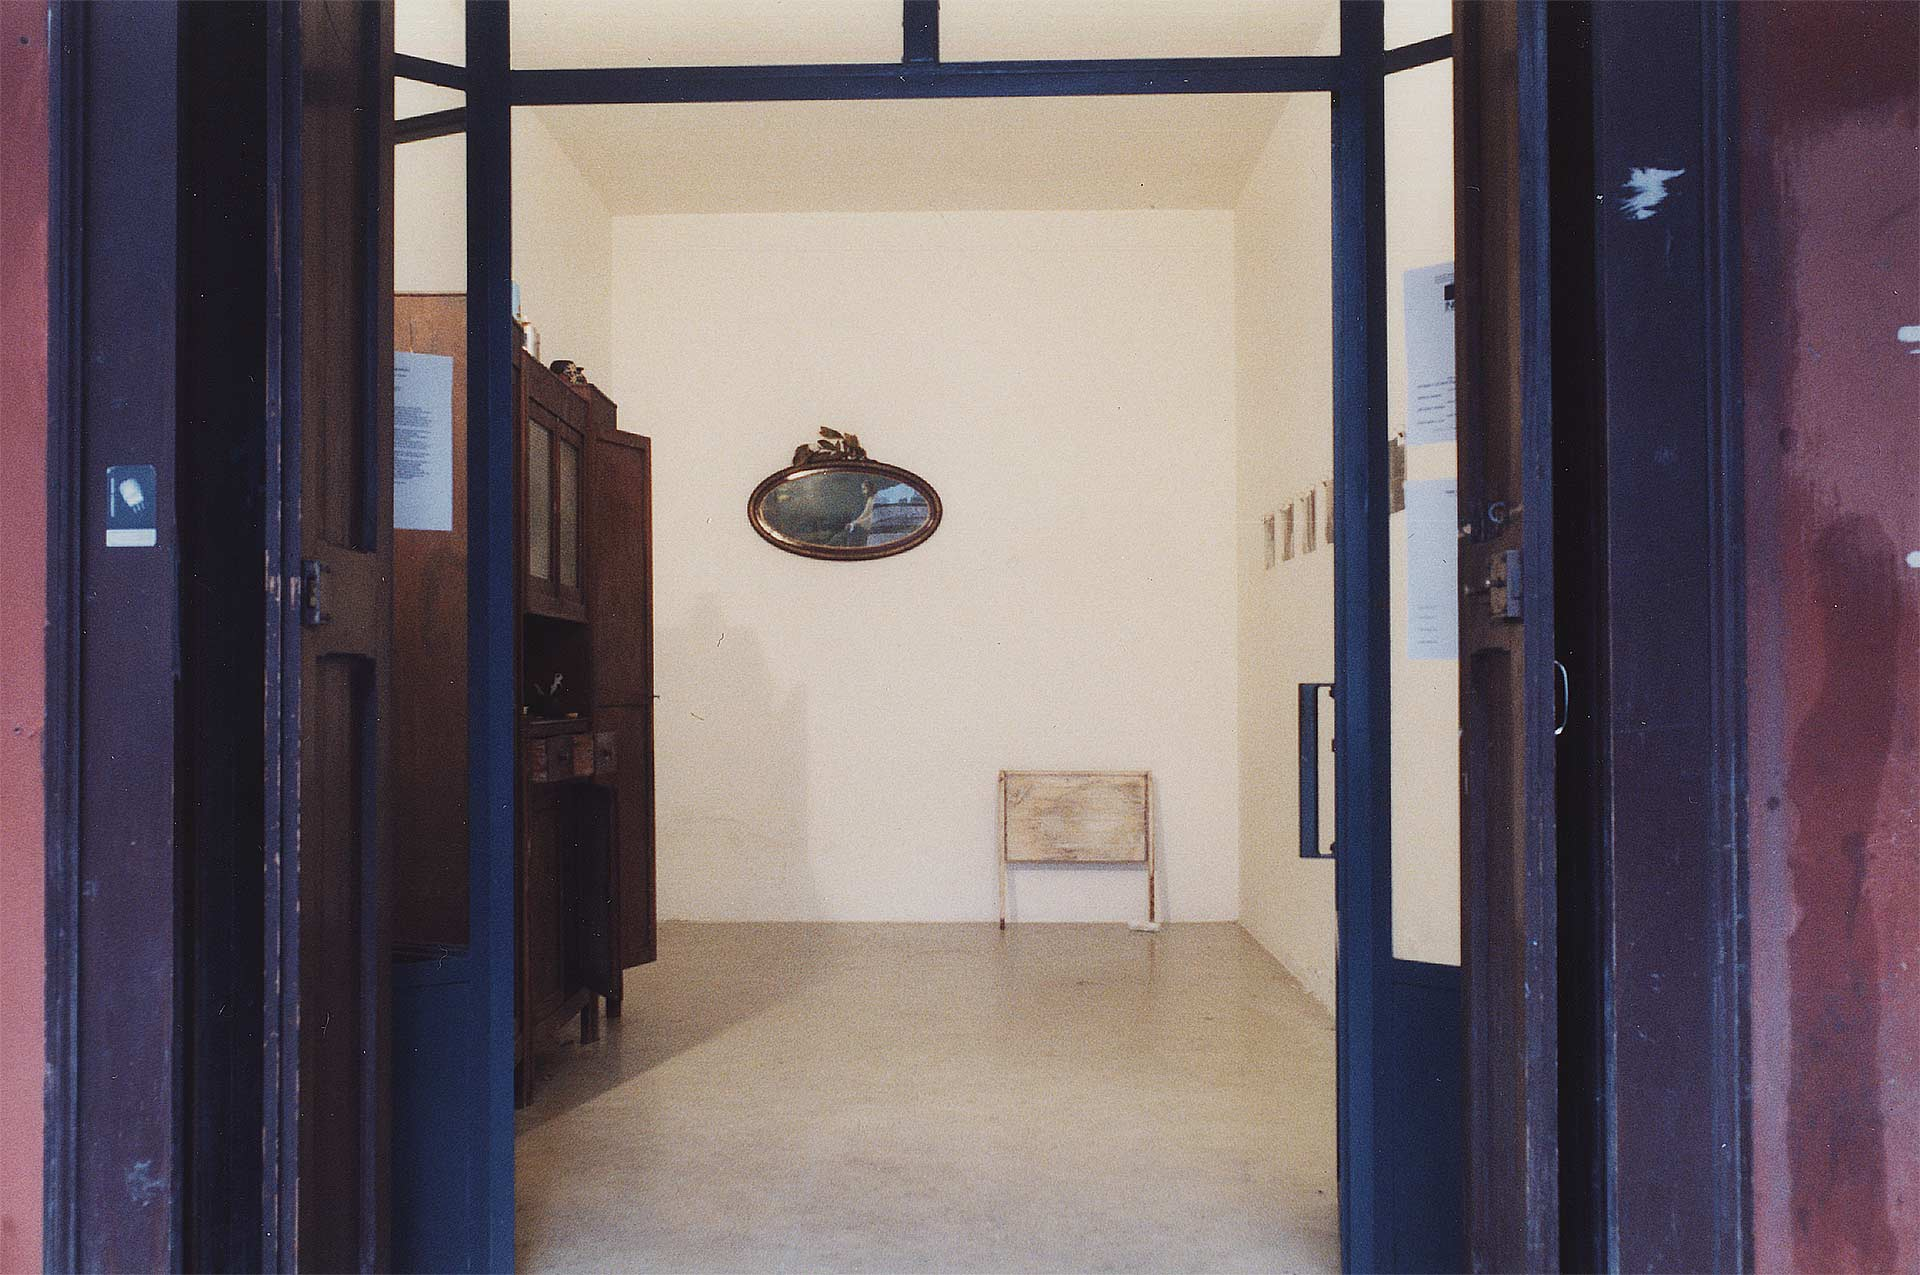 La casa dei nonni 2001, mixed media, exhibition at Graffio, Bologna